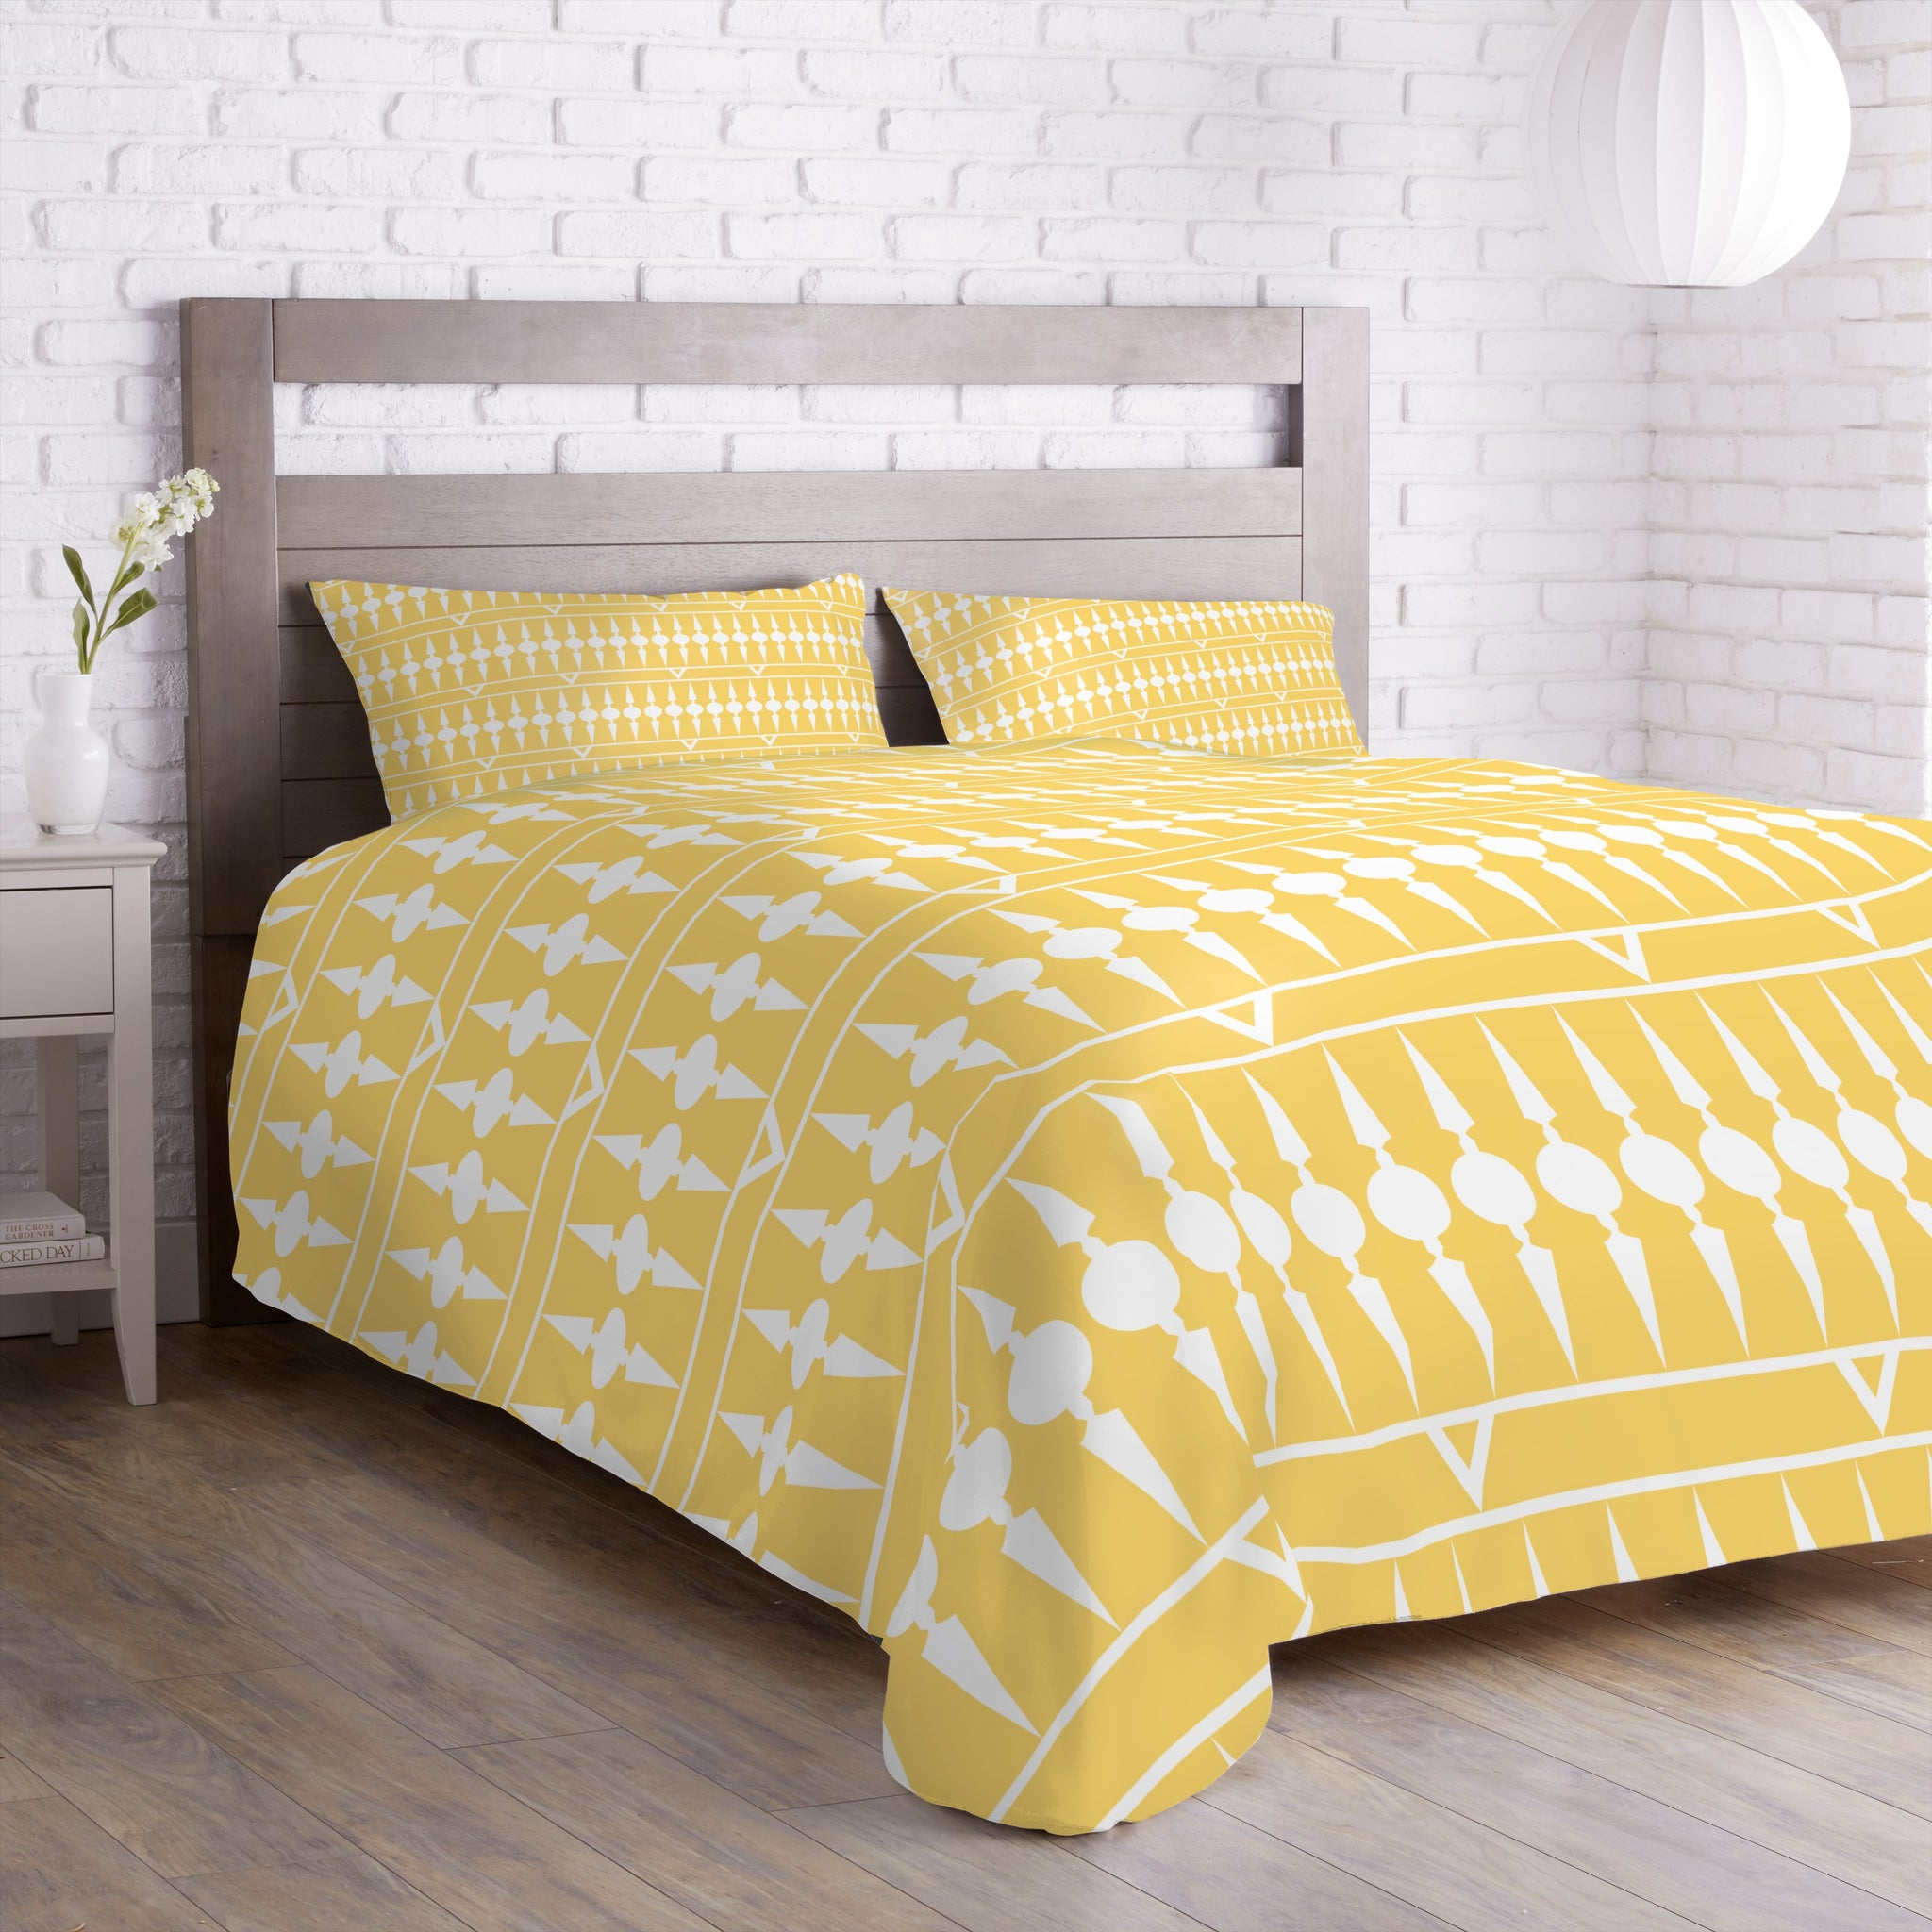 king crates torben barrel bedroom duvet in with yellow cover and on perfect crate splendid